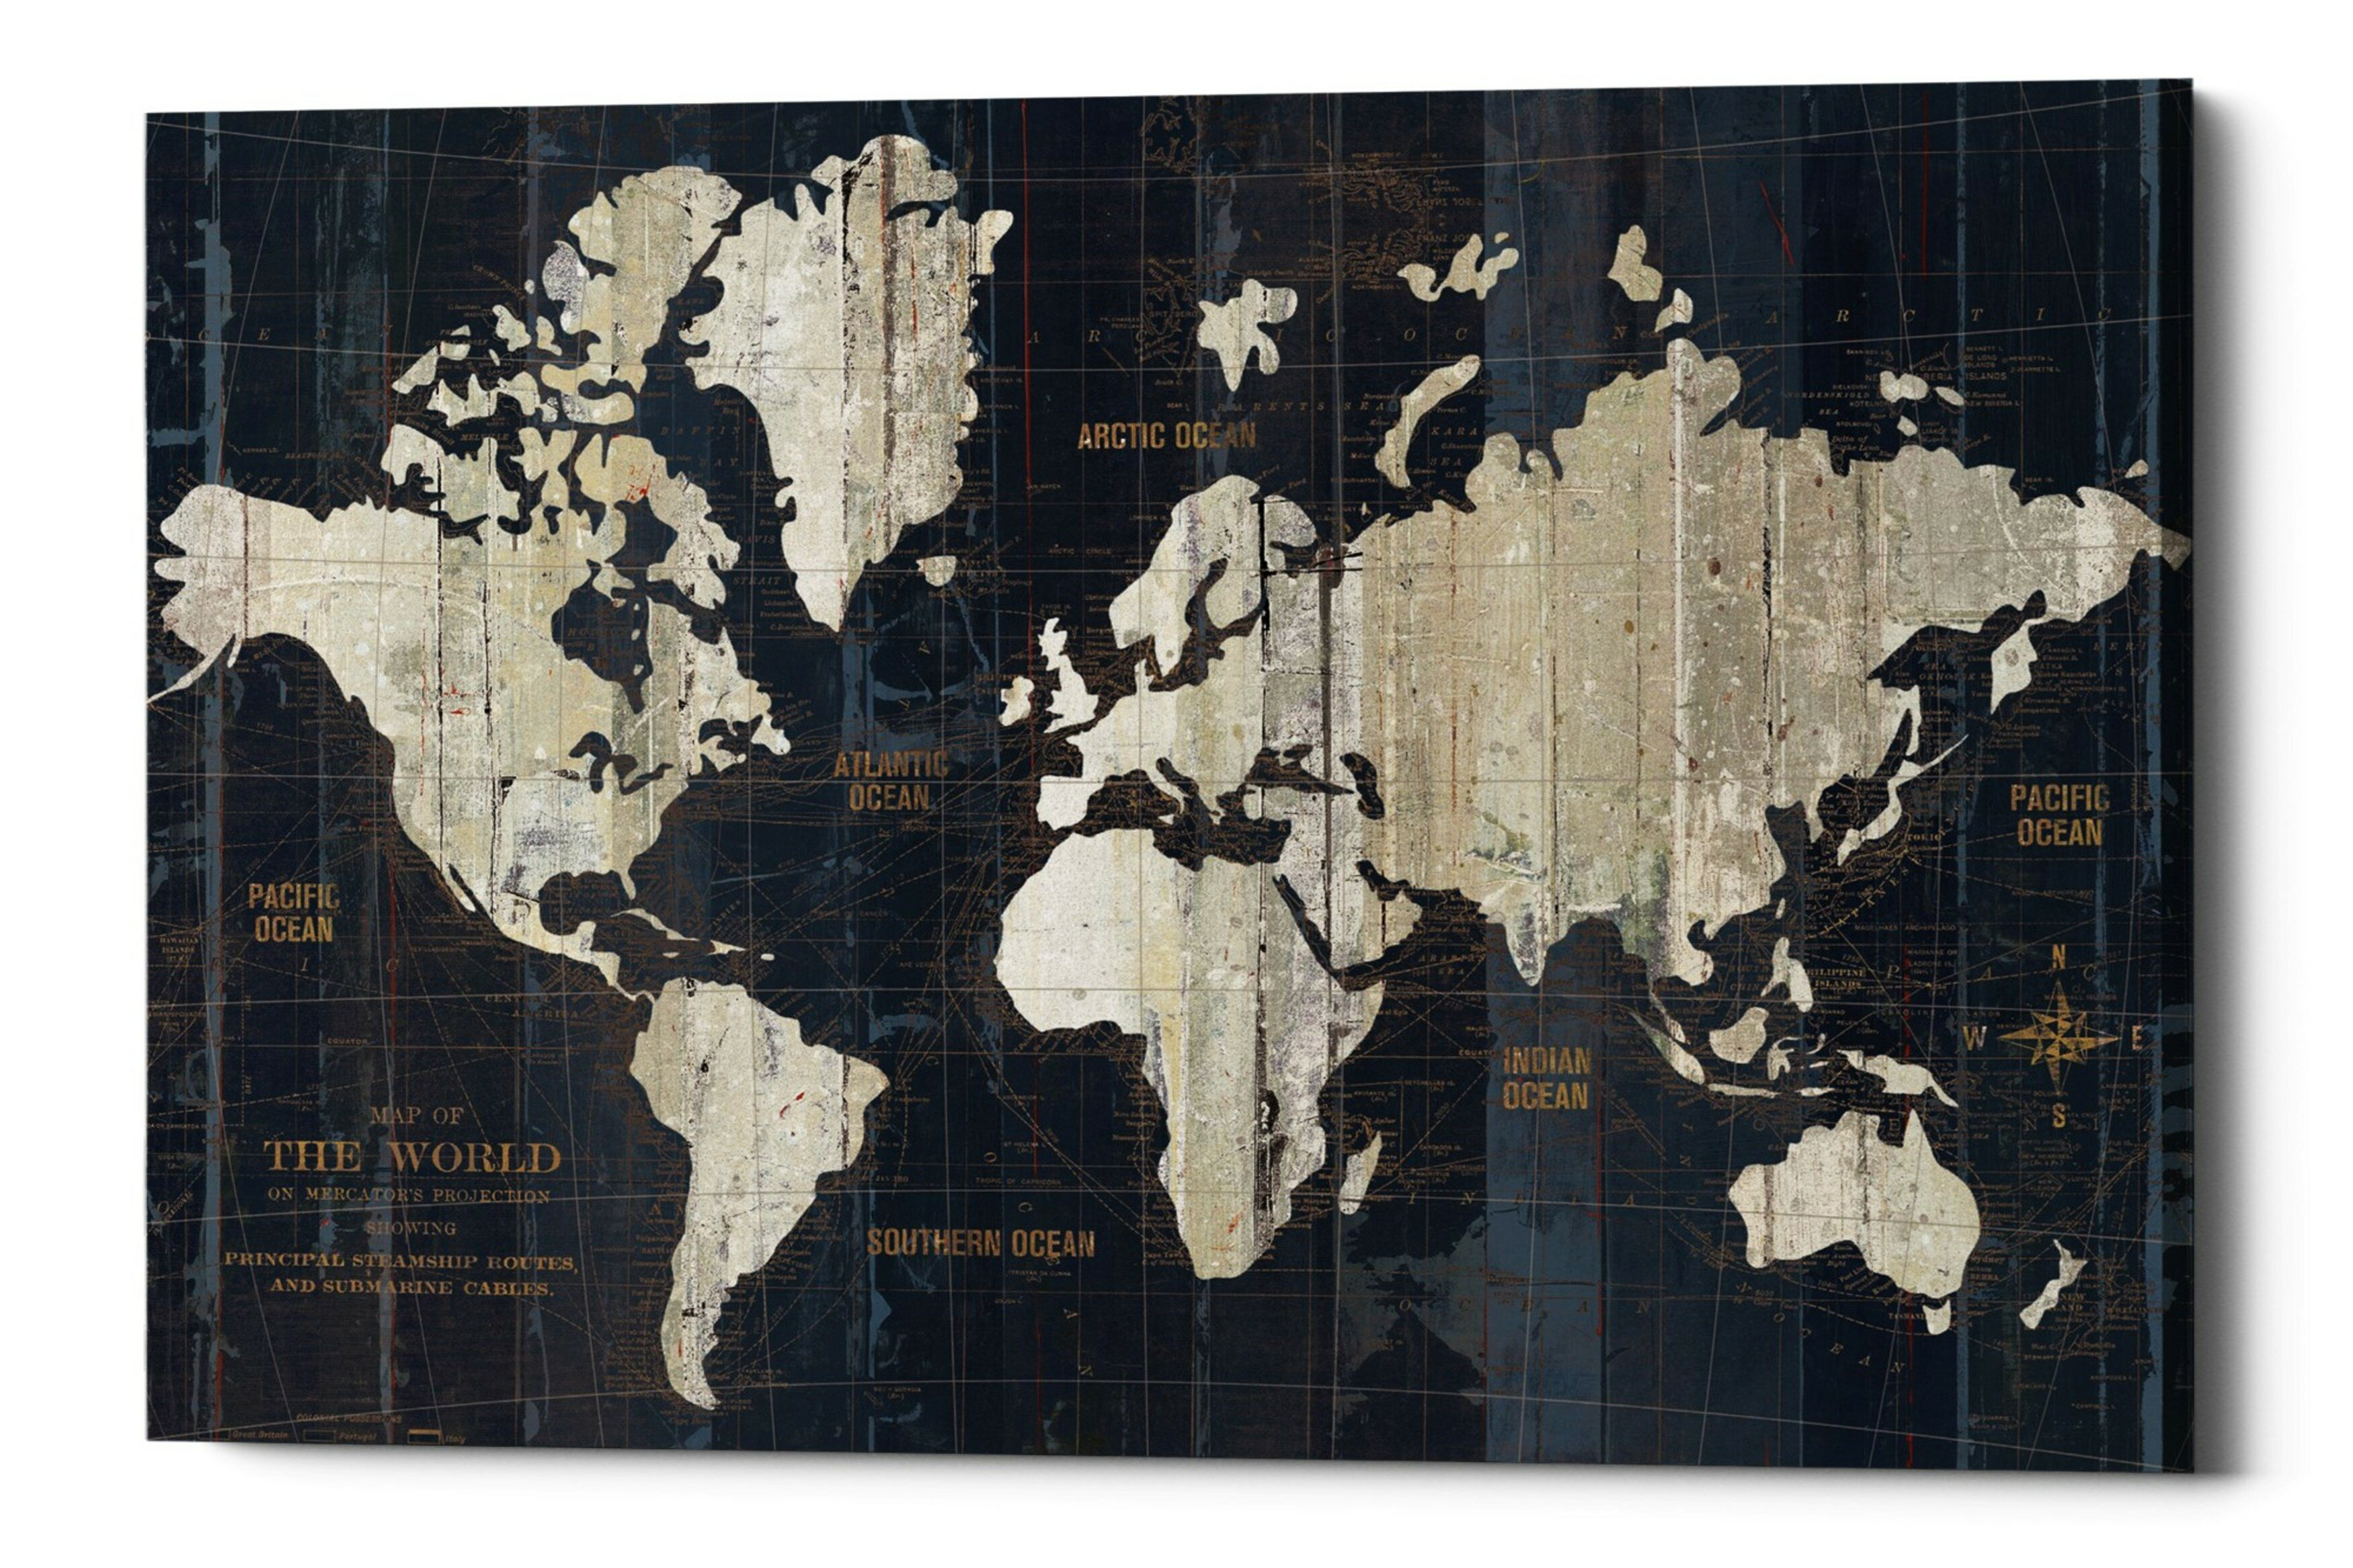 'Old World Map' Framed Graphic Art Print On Canvas In Beige/Navy on drawing map, marine map, north atlantic drift map, denim map, disney channel map, wax map, metallic map, laminated map, geographix map, string map, graphic map, world map, exalted map, middle bay lighthouse map, solid map, calculating map, tarp map, wallpaper map, design your own map, styrofoam map,